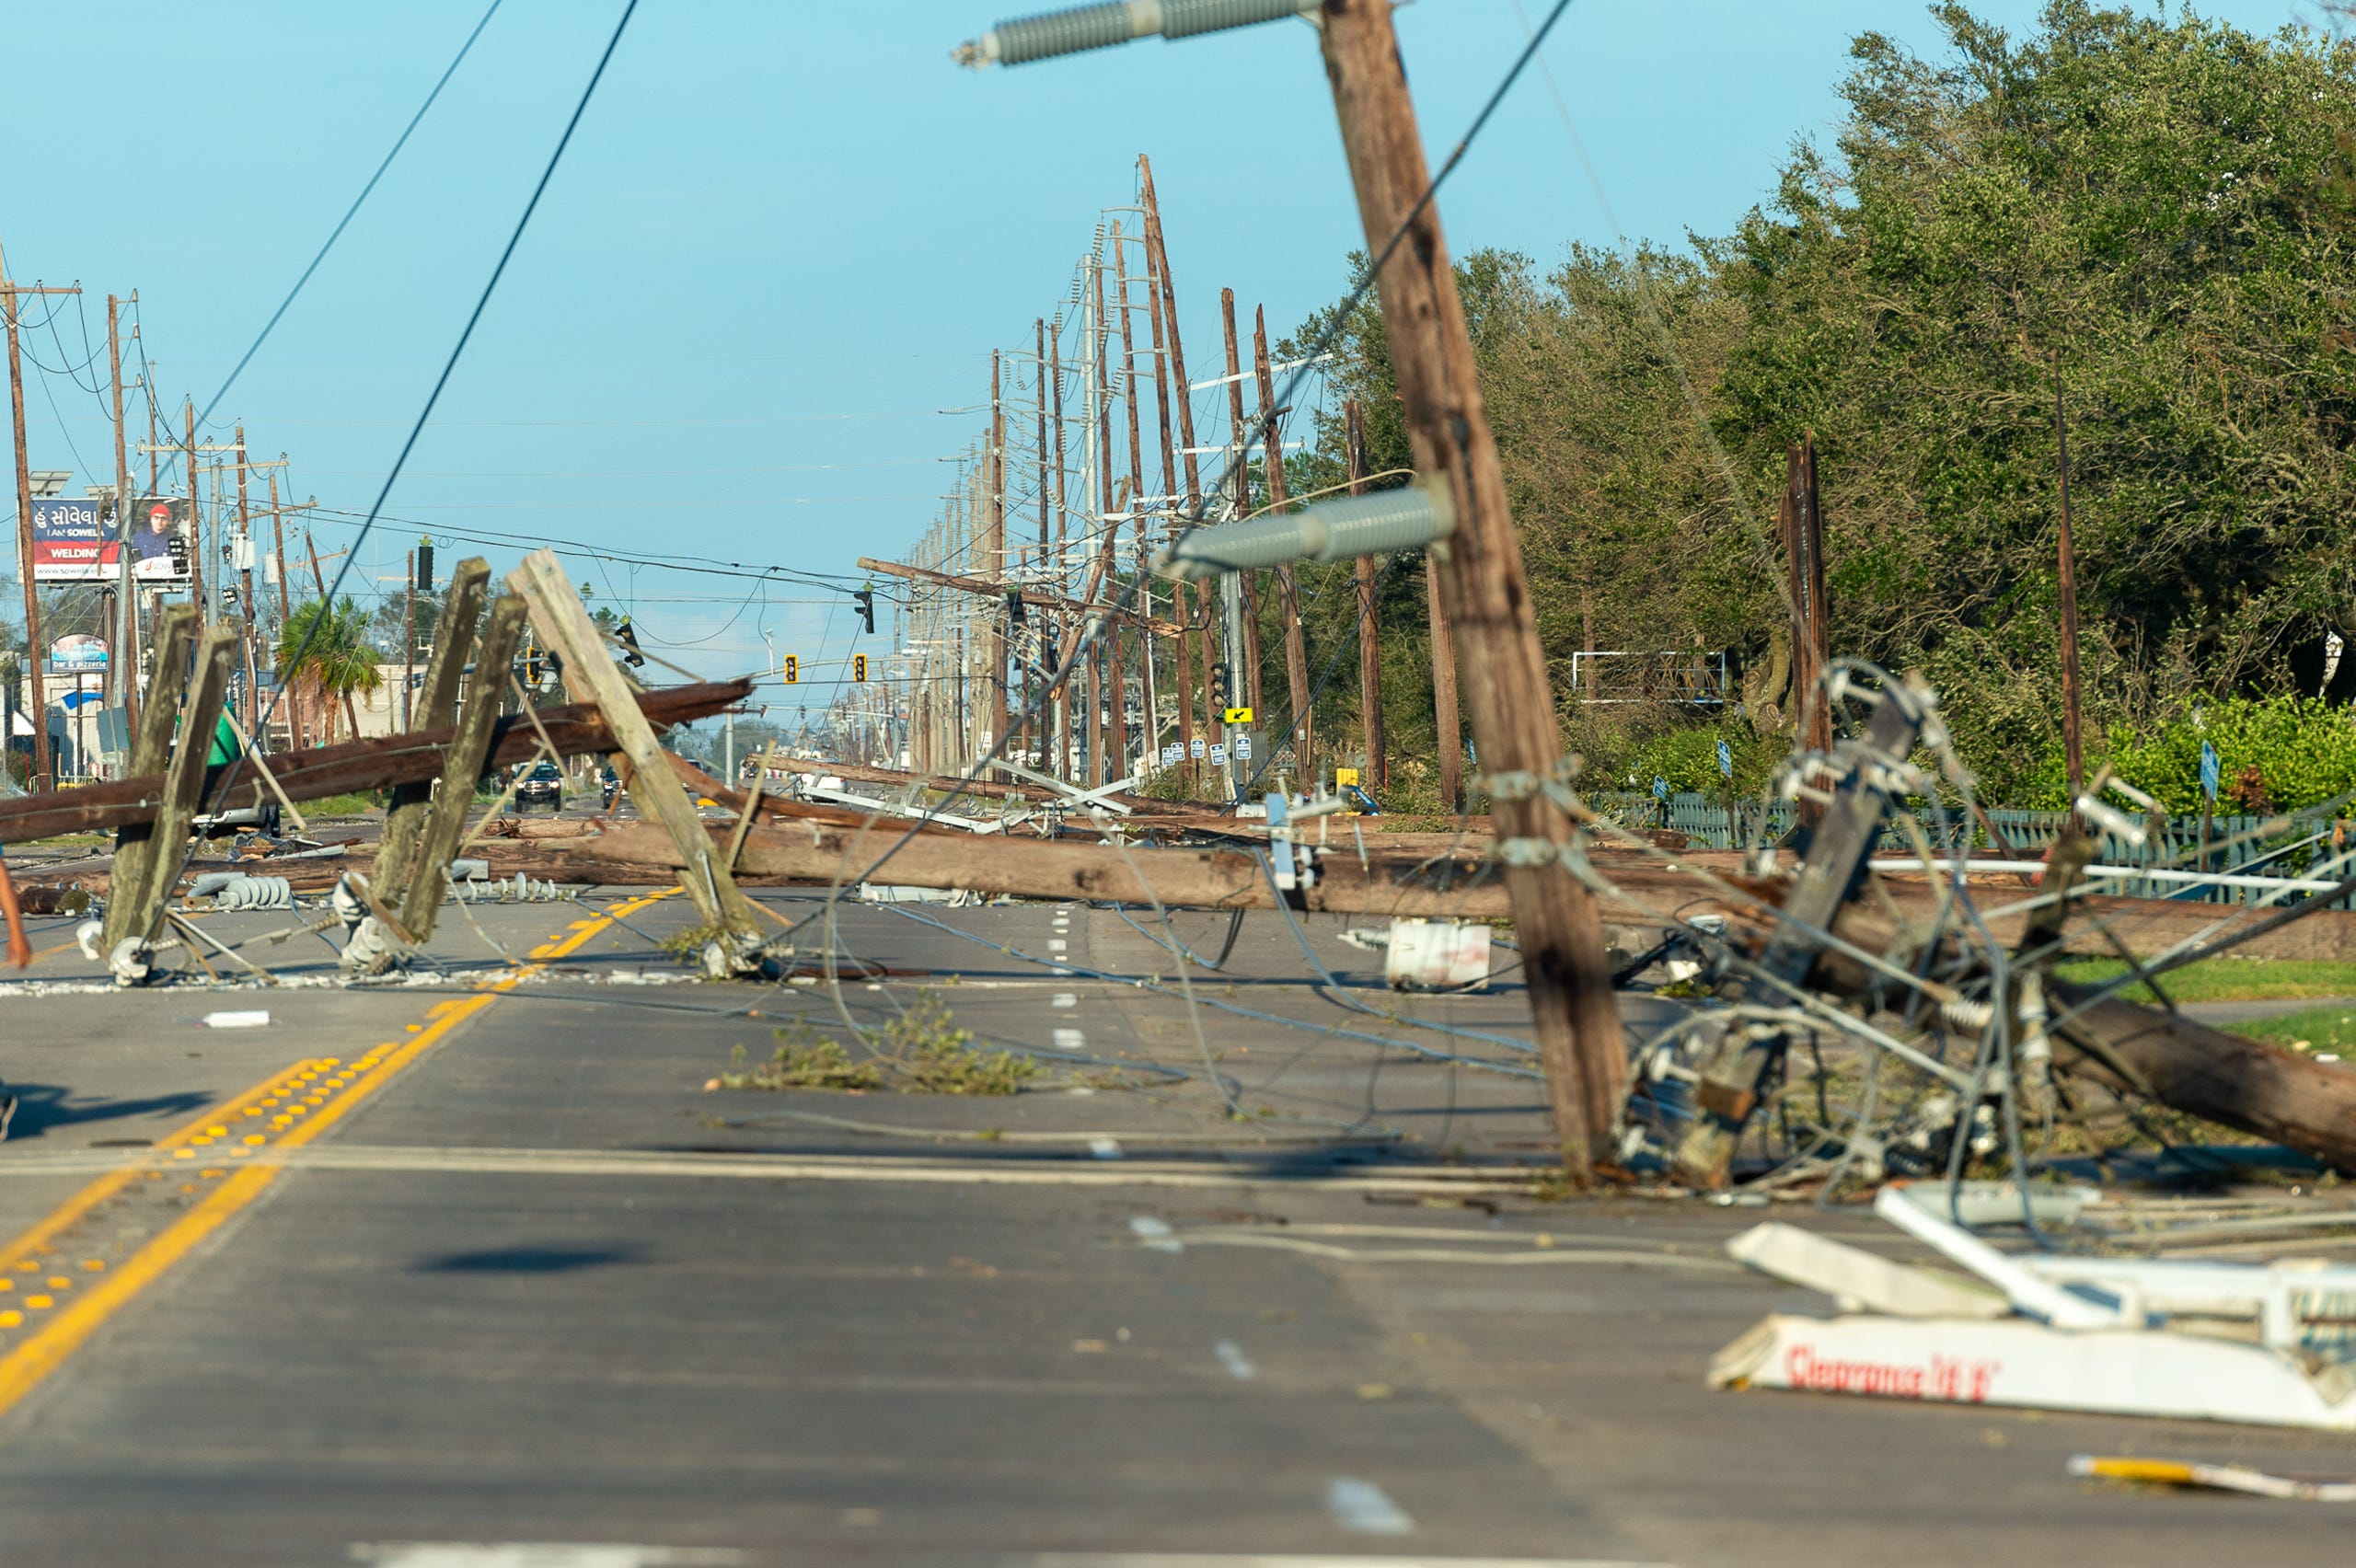 Lake Charles, Calcasieu Parish pictures of Hurricane Laura damage